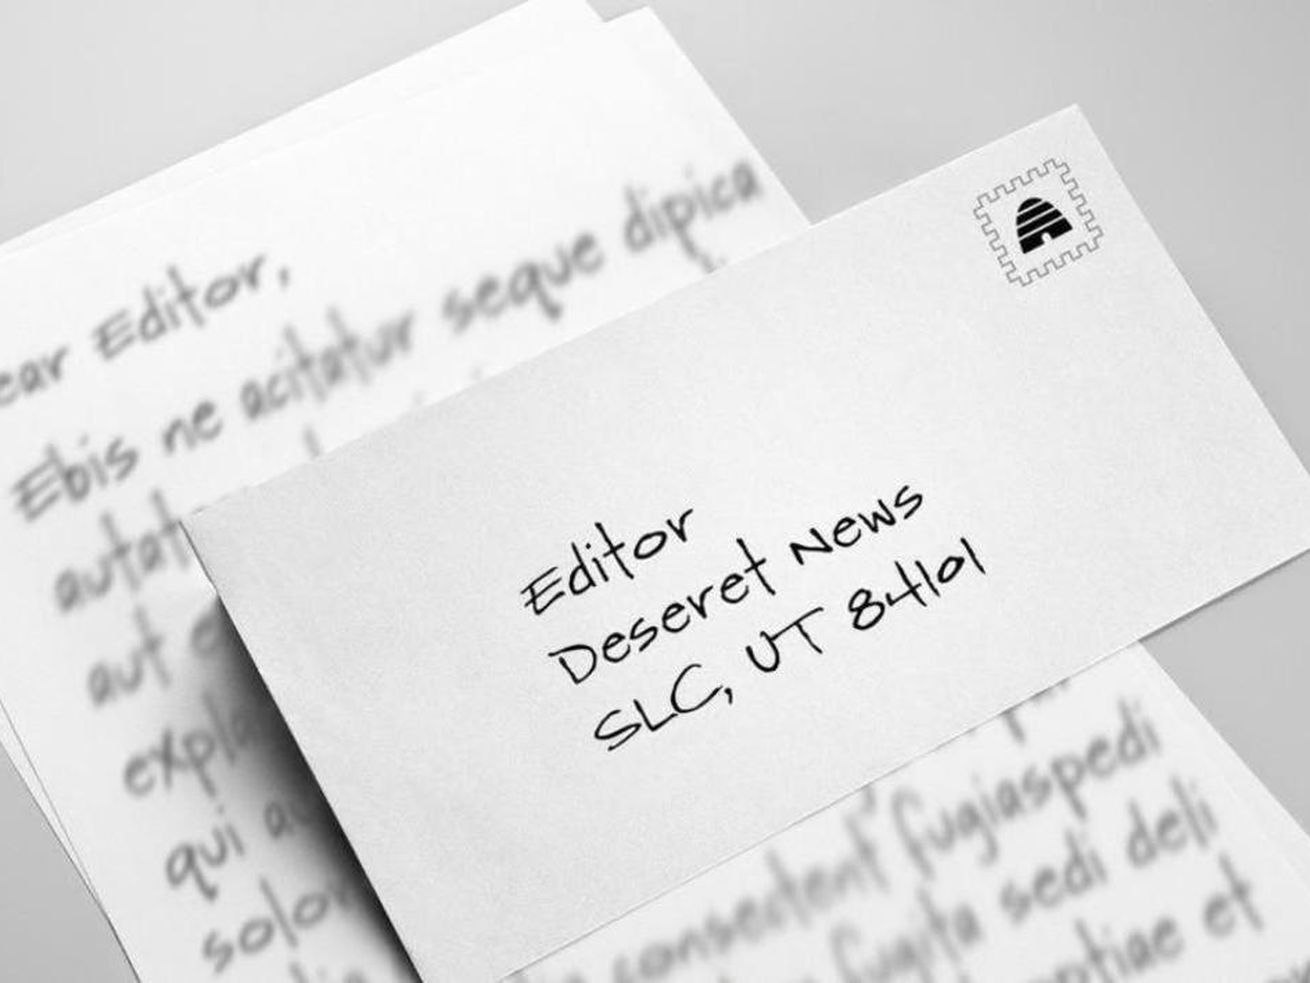 Letter: A bad use of space